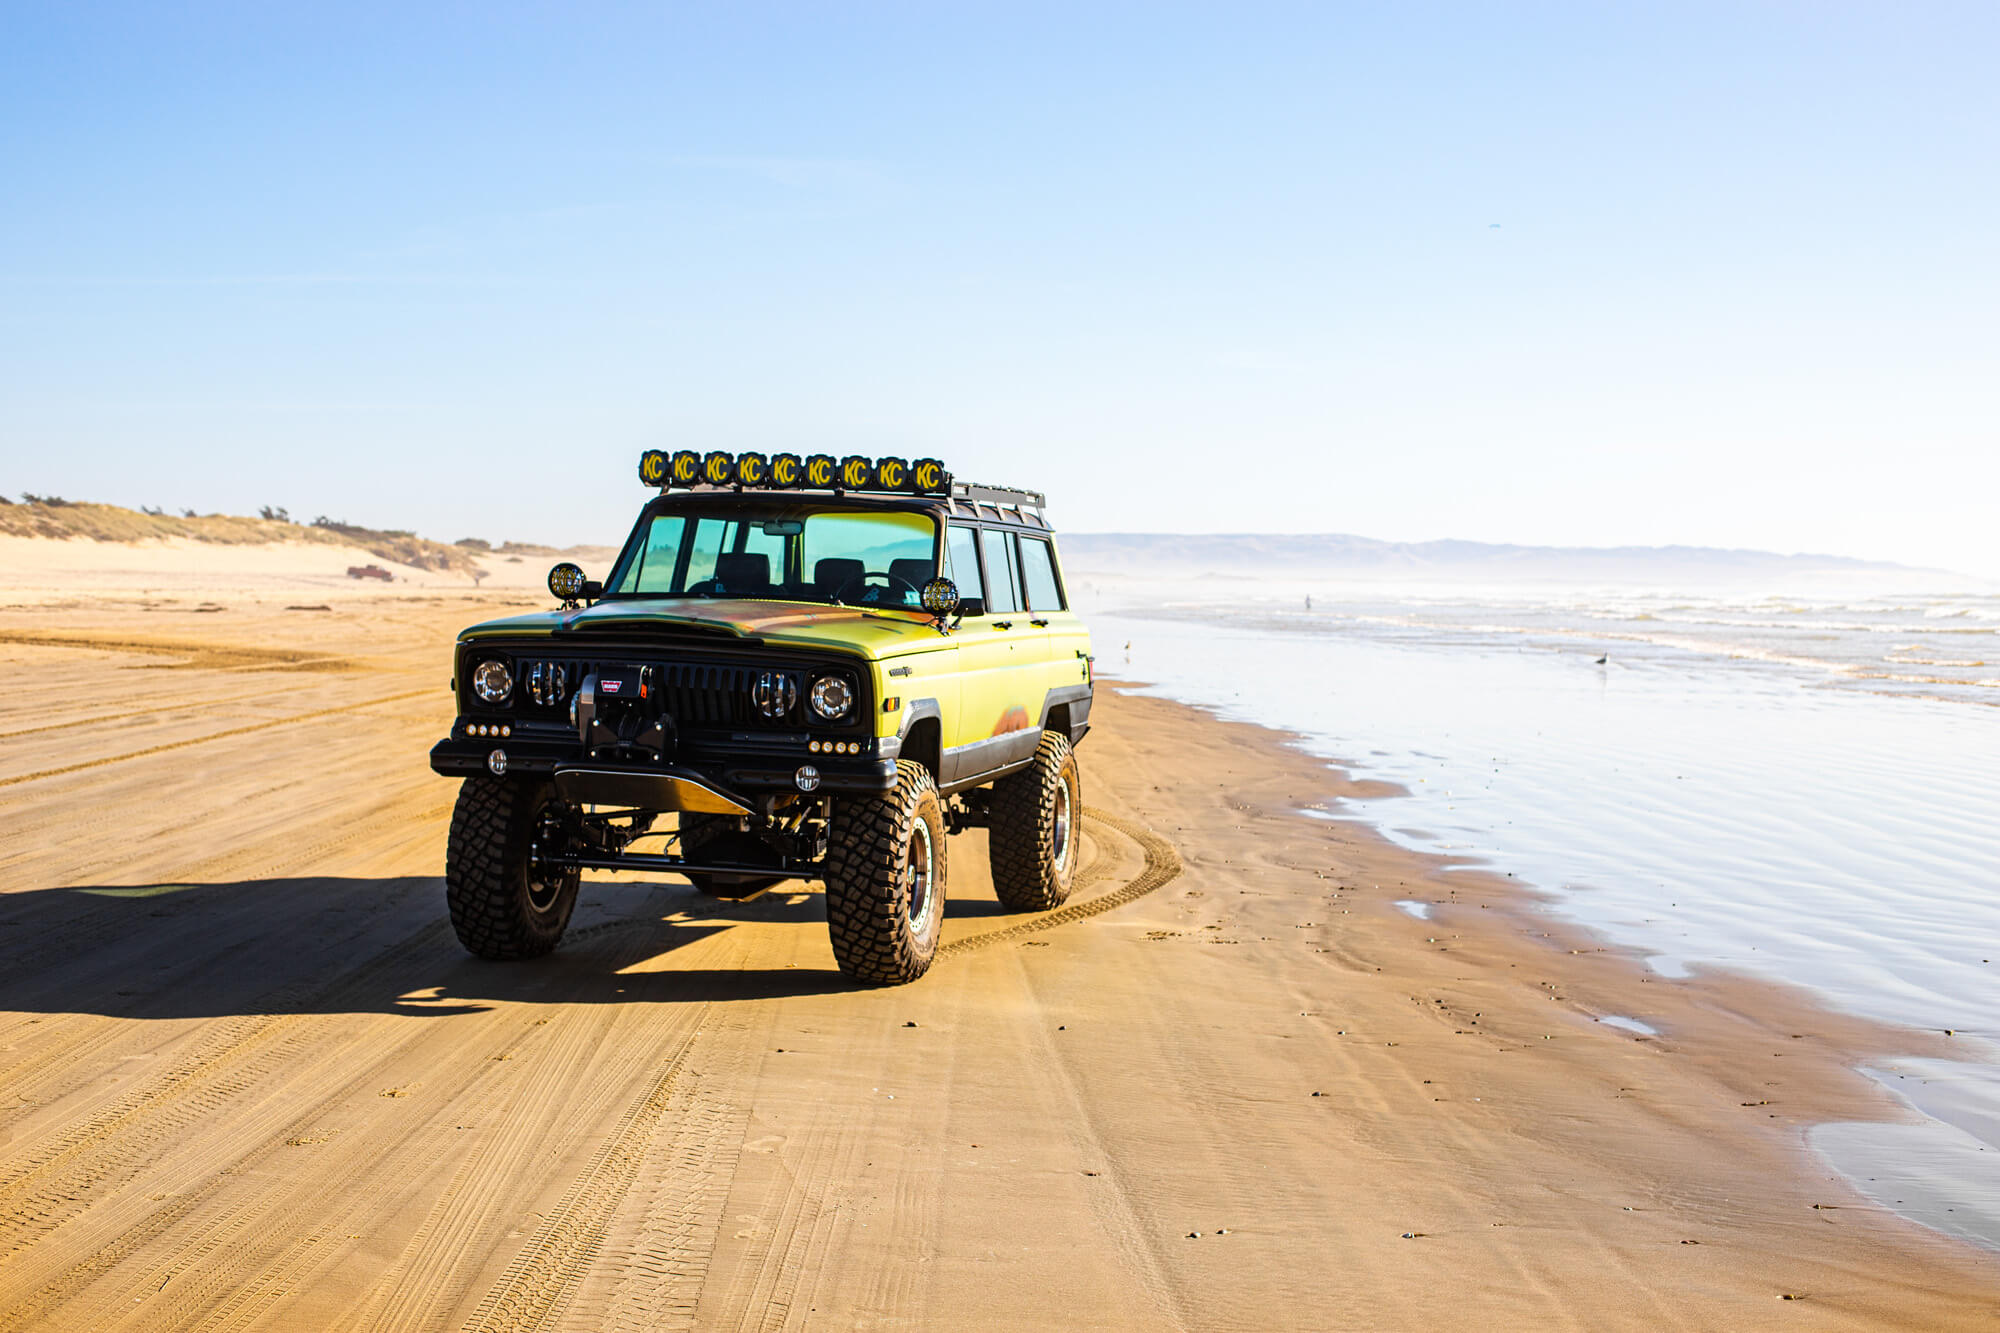 KC's Classic Jeep Wagoneer Off Road Reconditioned Build - Image #01